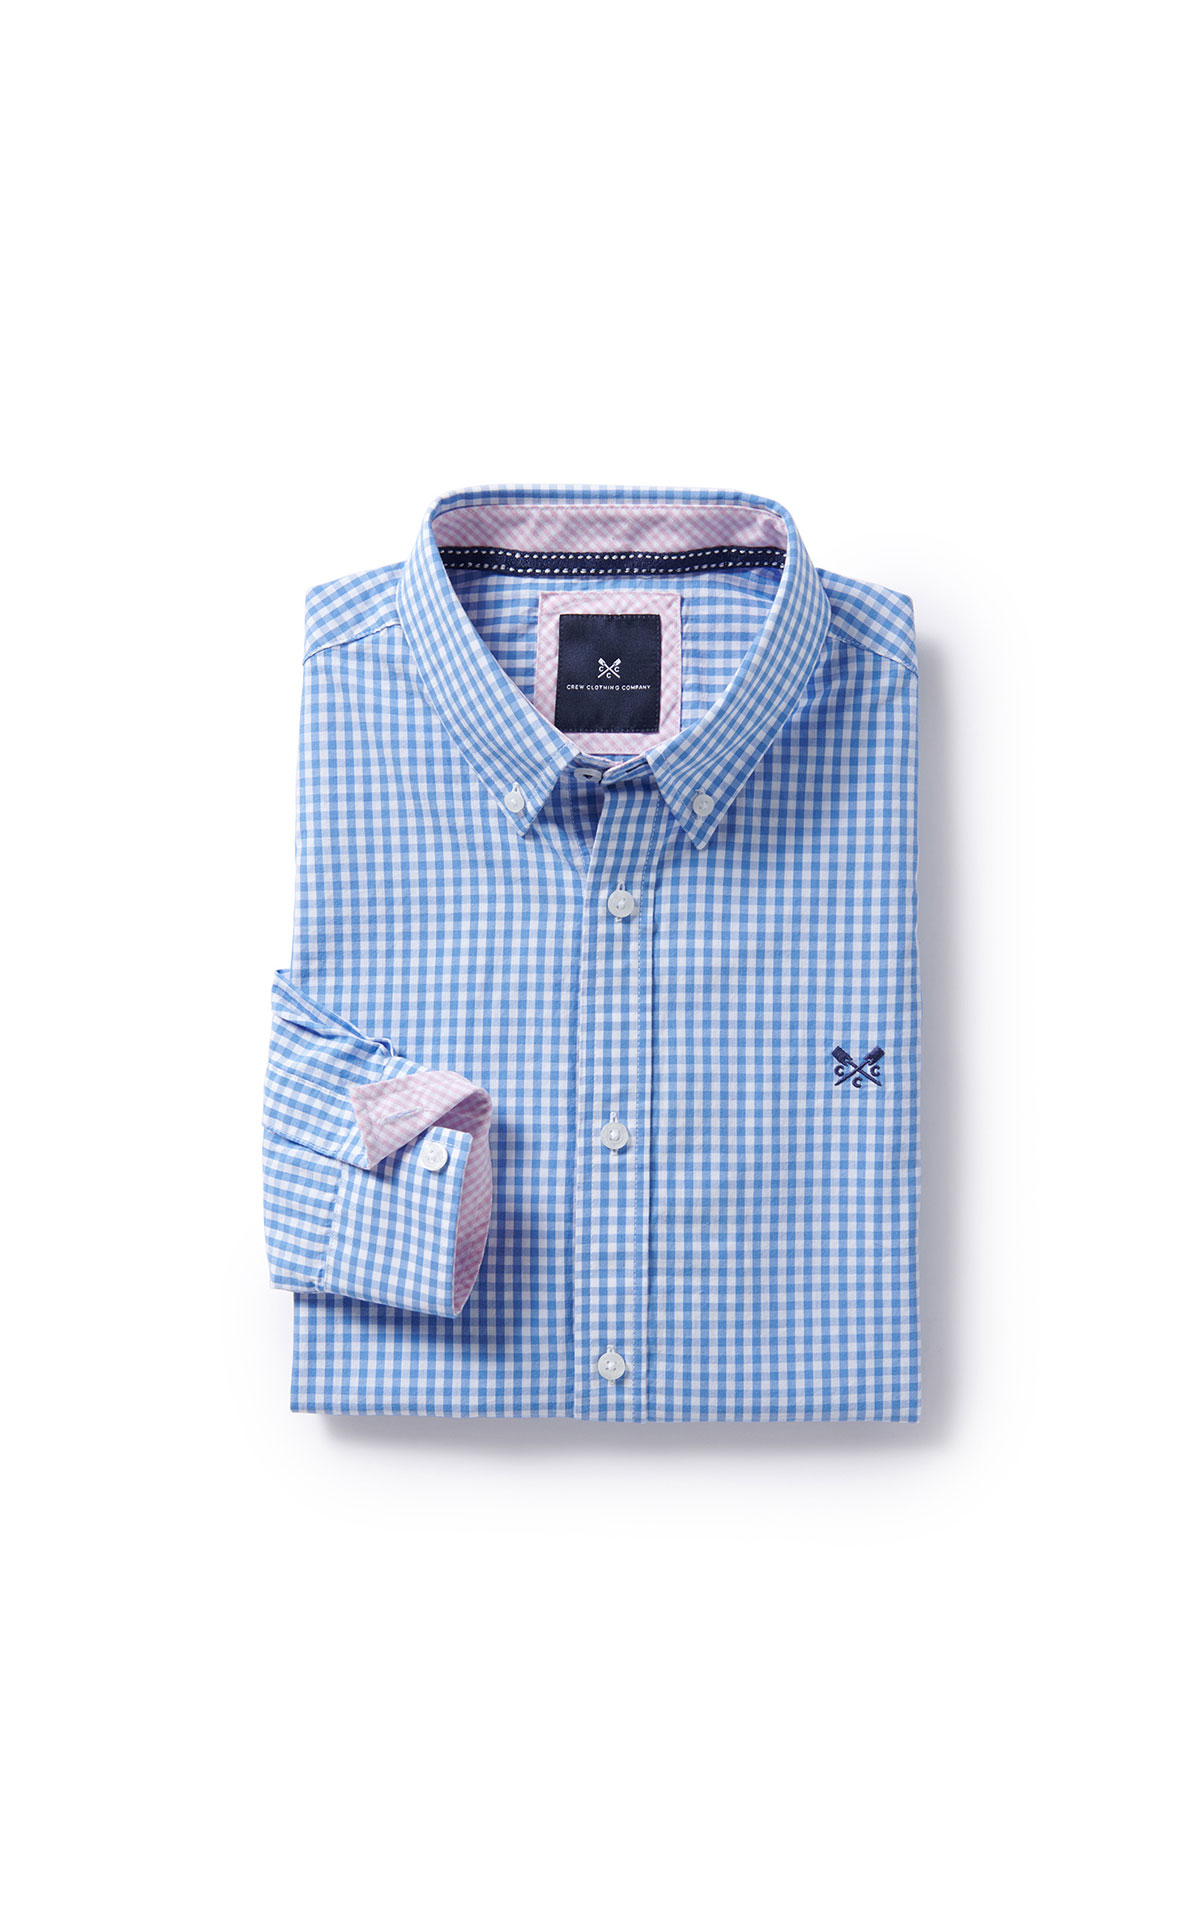 Savoy Taylors Guild Crew Clothing Company Oxford blue shirt from Bicester Village